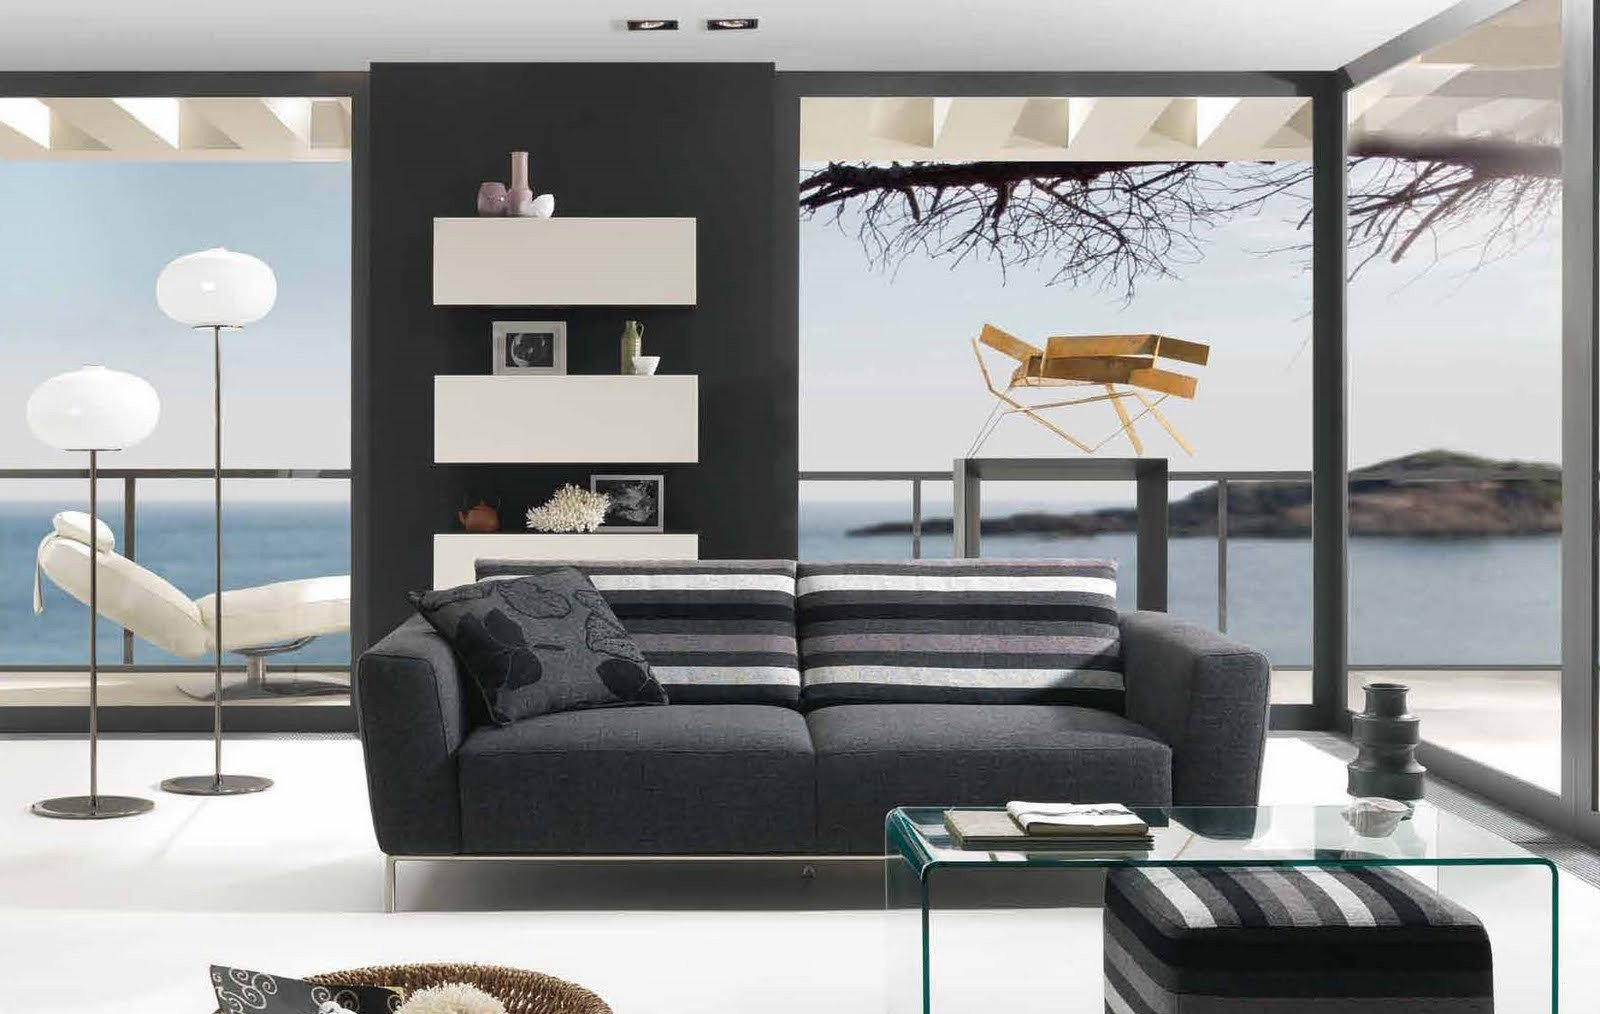 Contemporary Living Room sofas New Future House Design Modern Living Room Interior Design Styles 2010 by Natuzzi